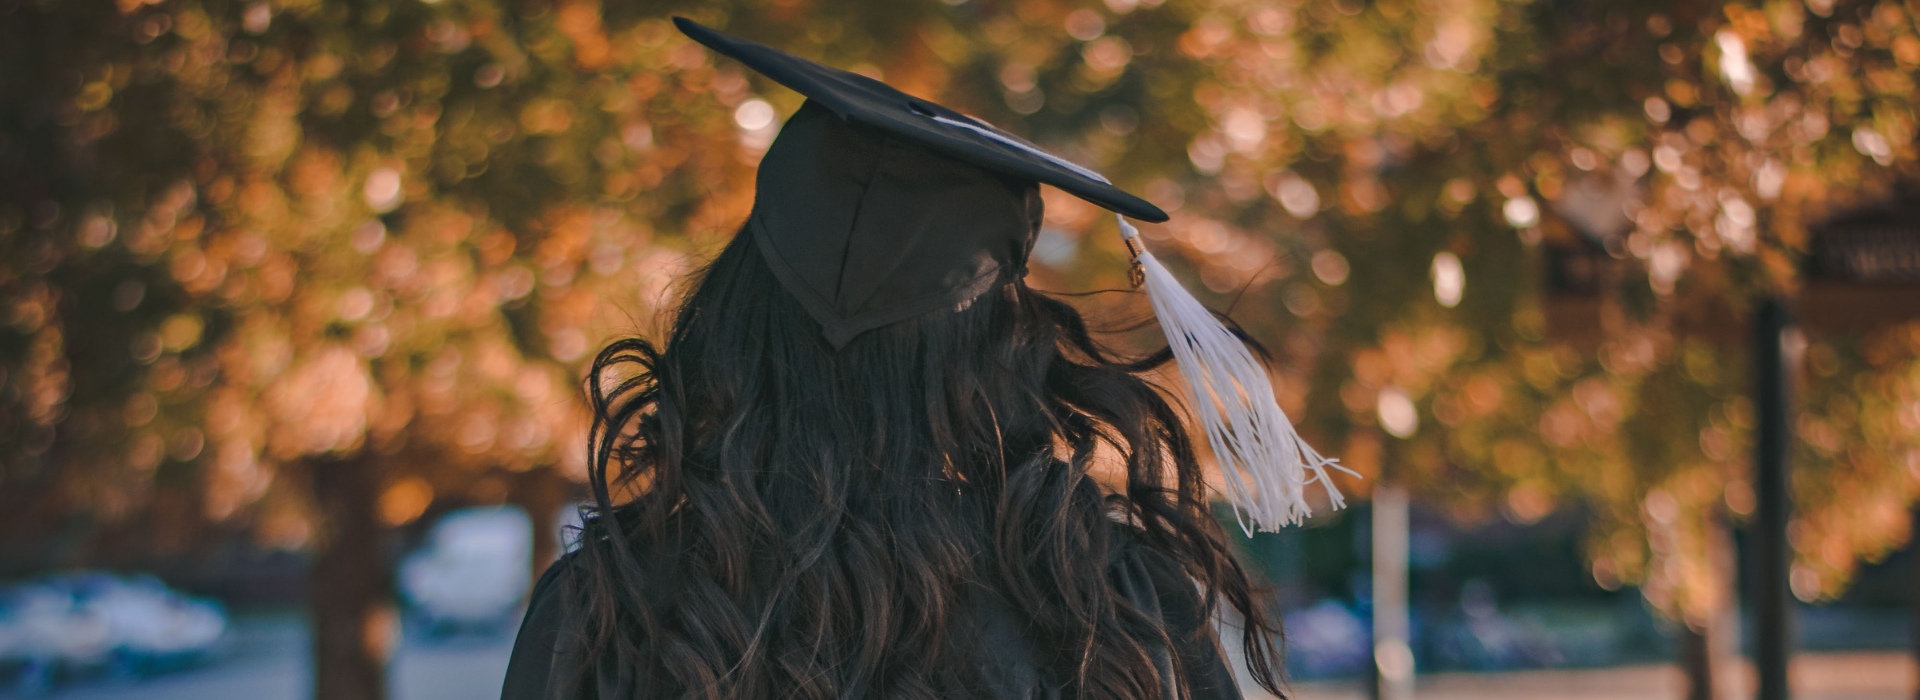 Girl with a graduation cap and gown